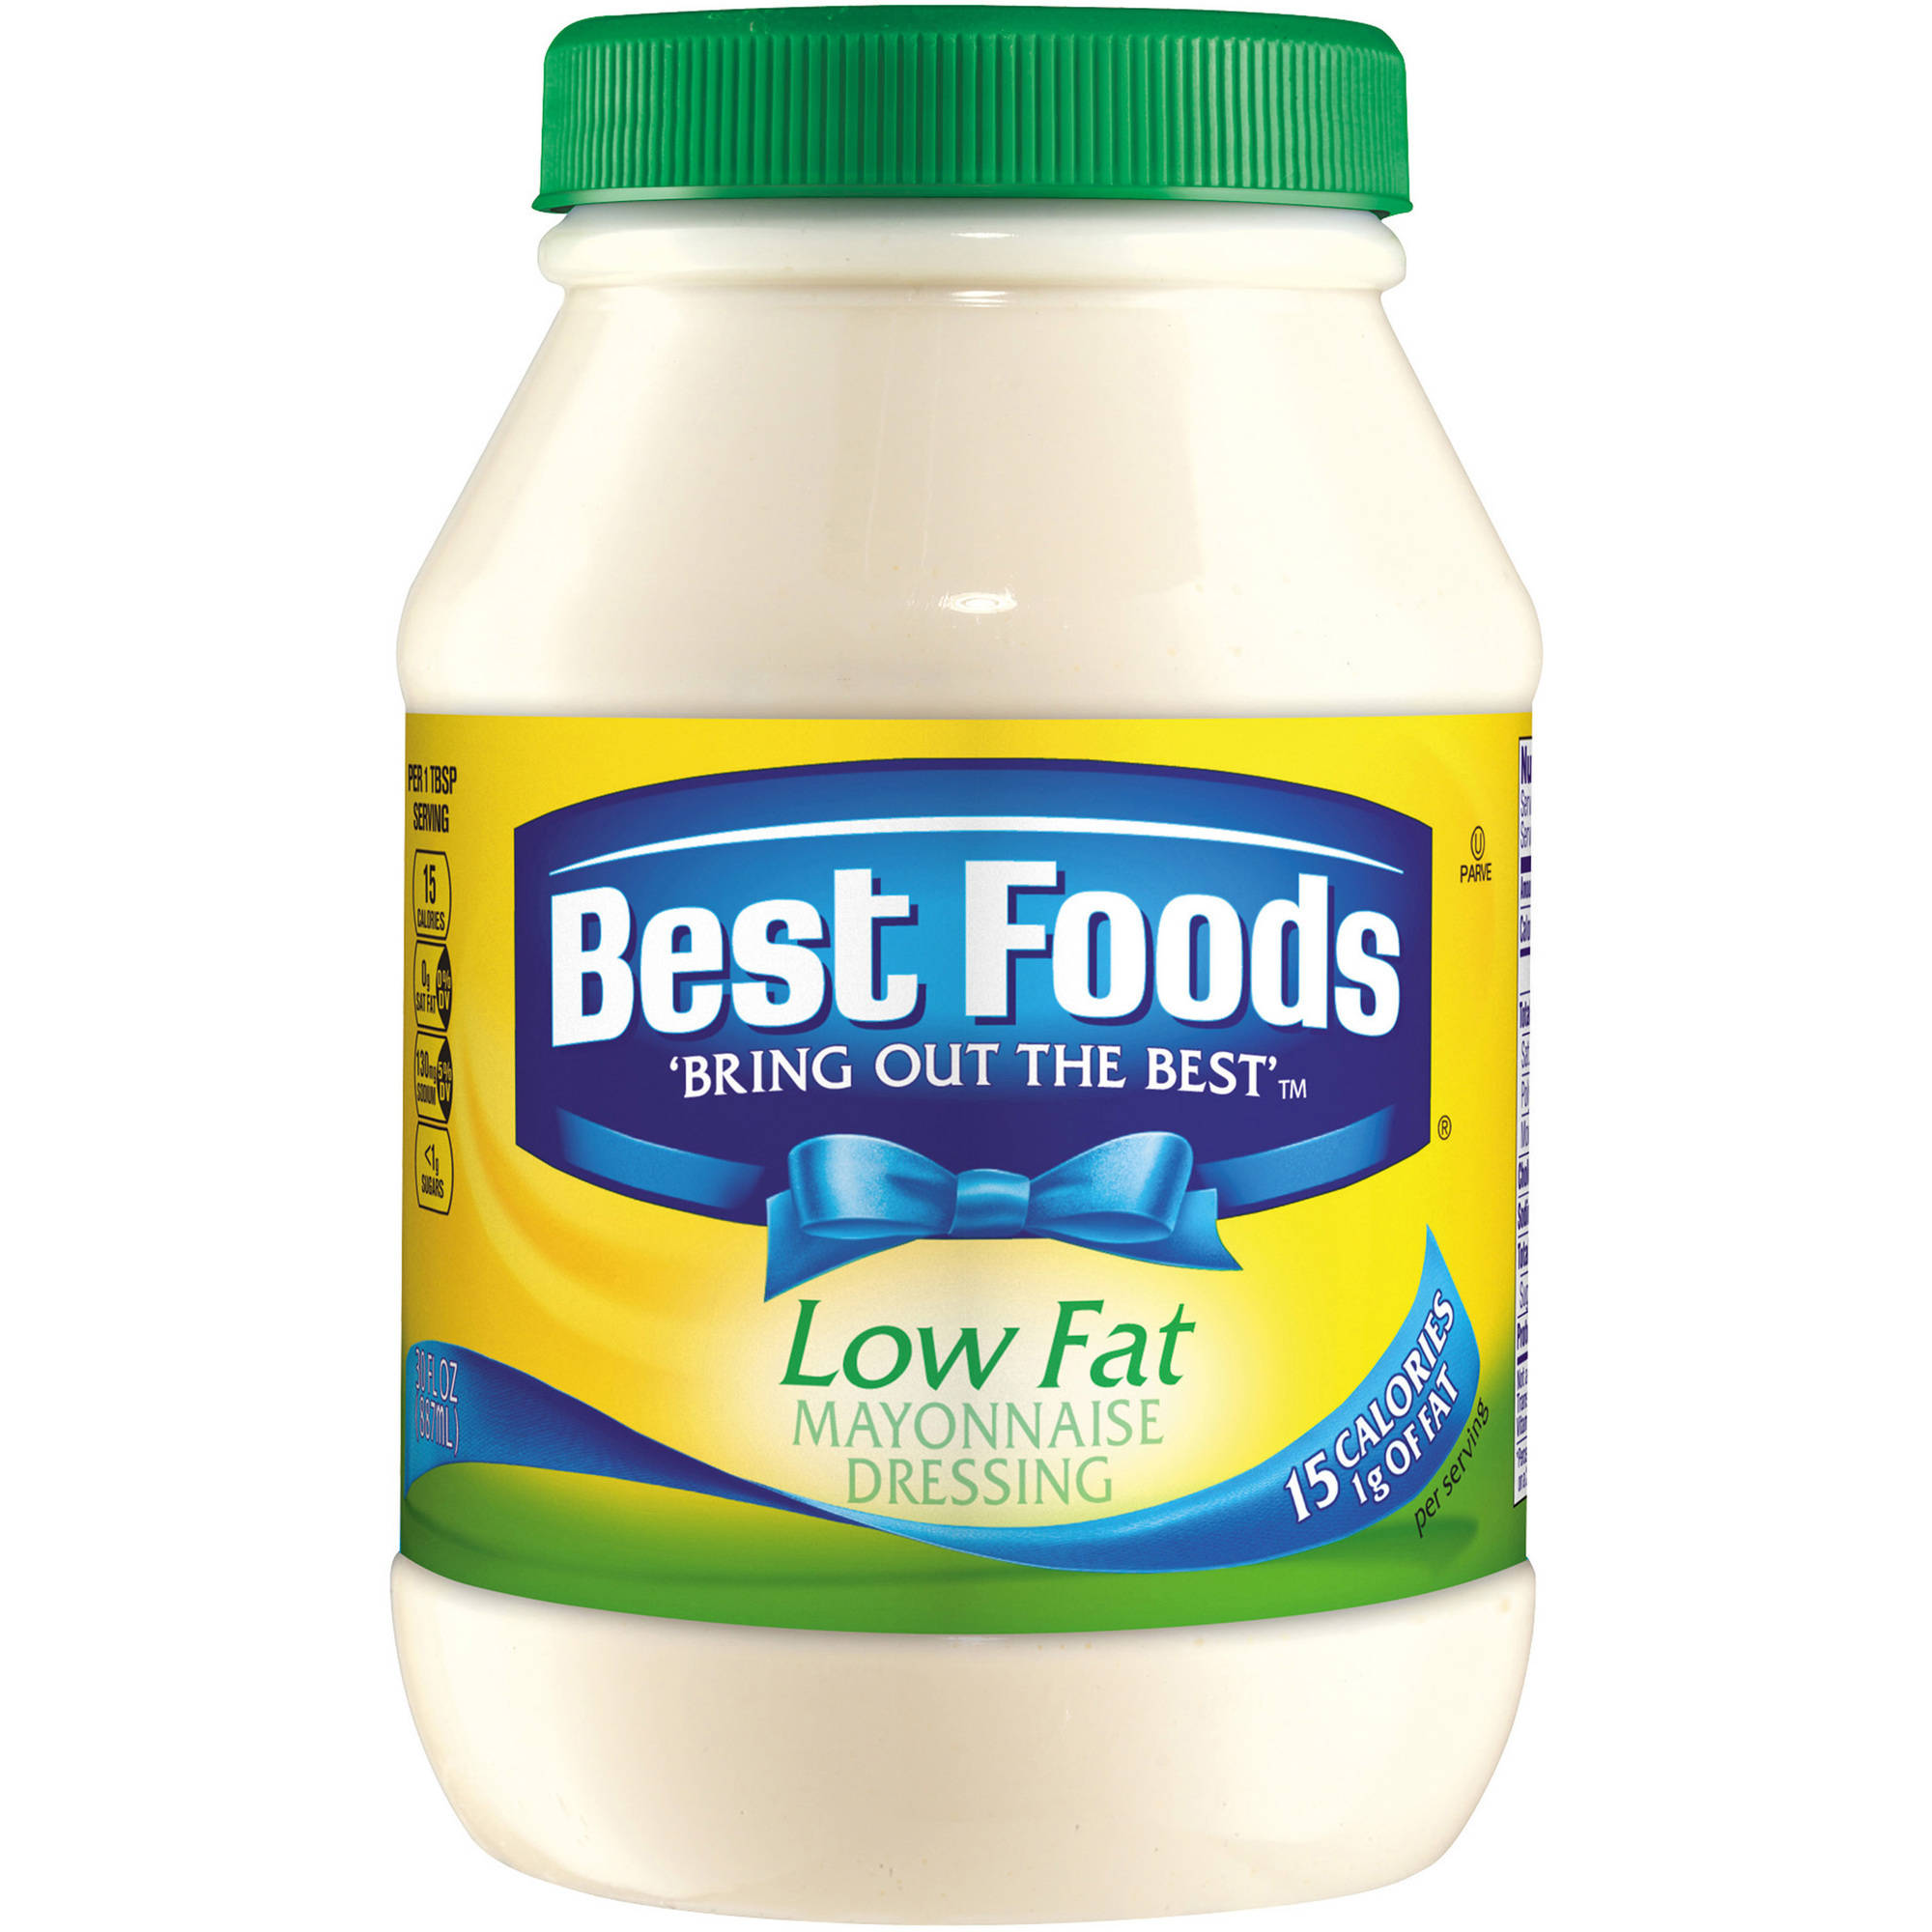 Best Foods Low Fat Mayonnaise Dressing, 30 fl oz